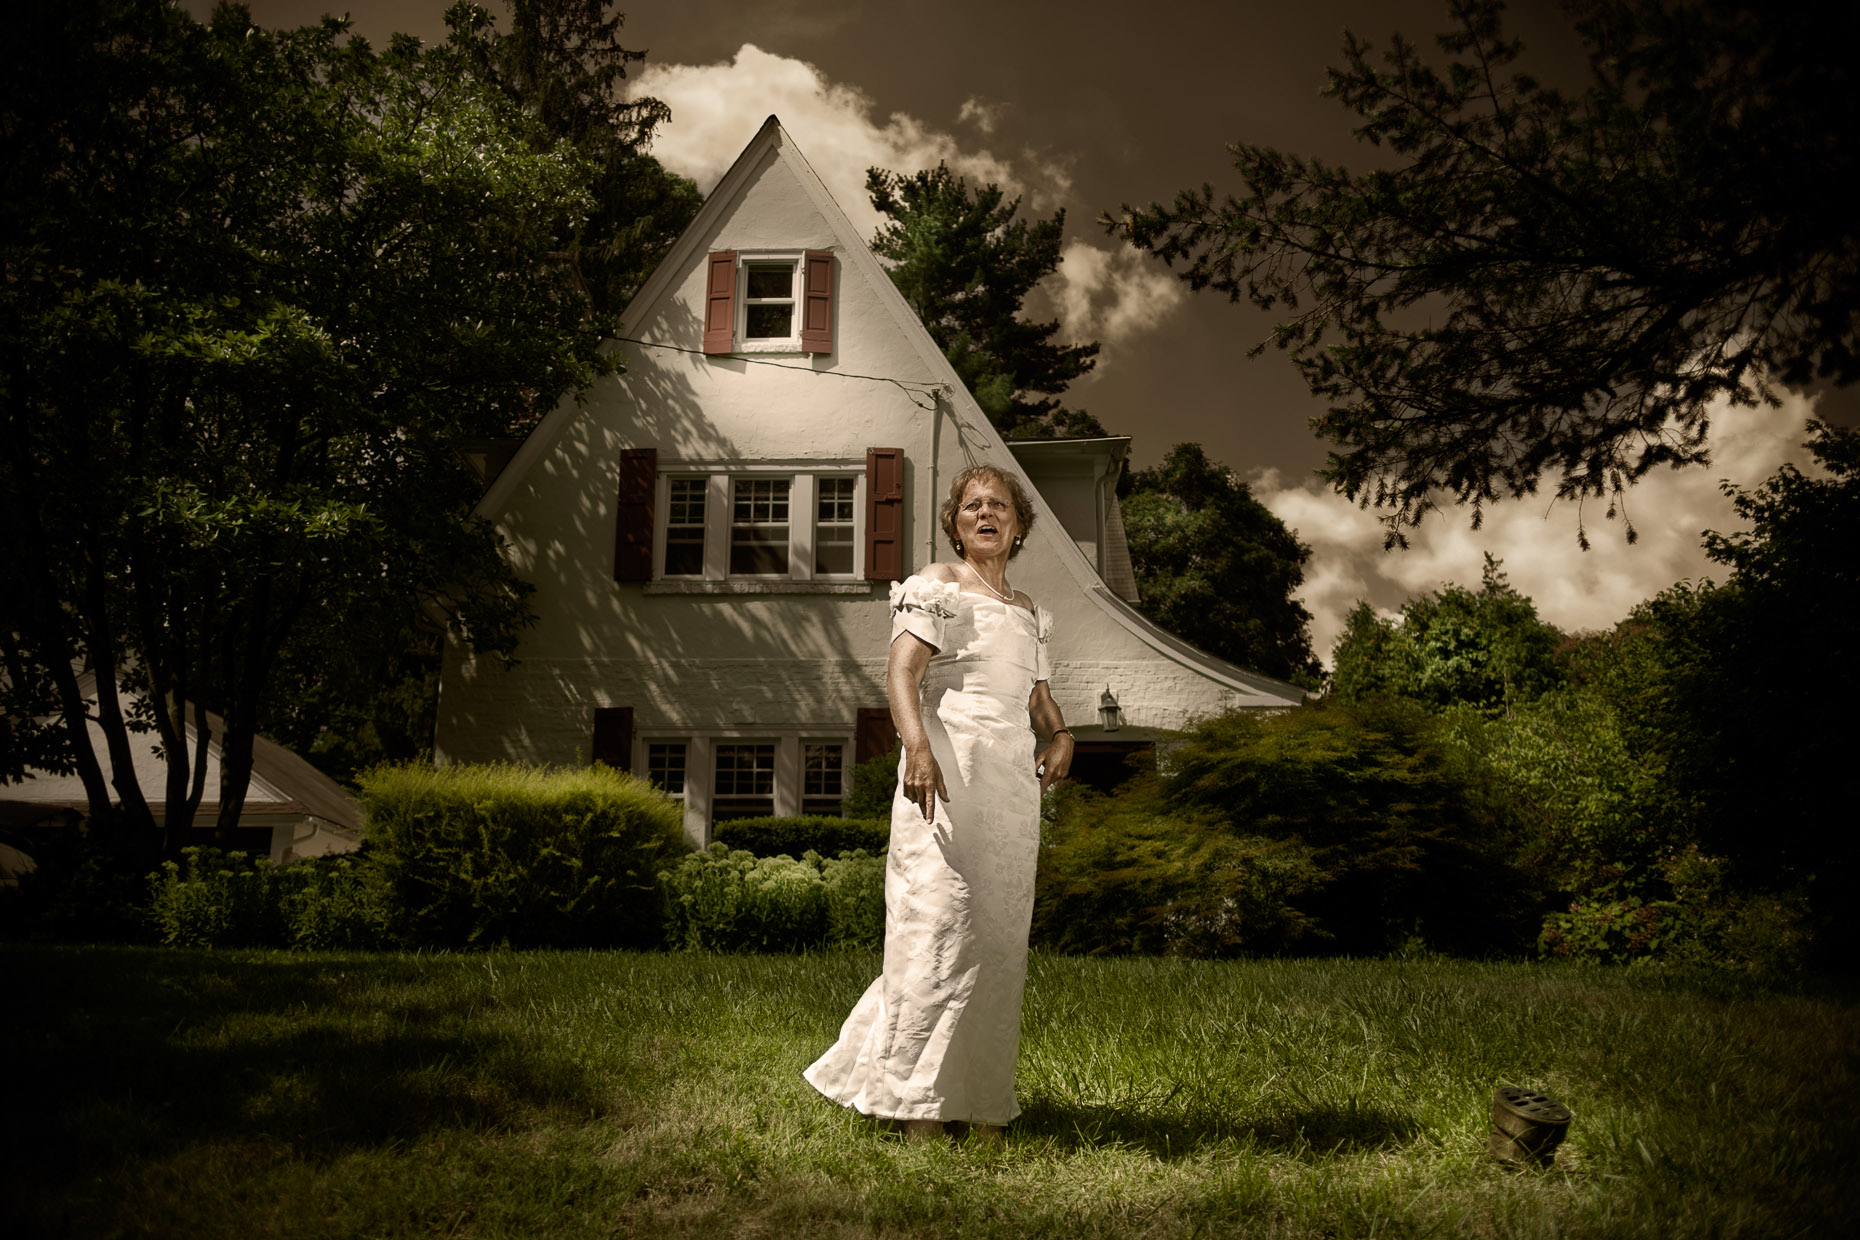 portrait-housewife-woman-wedding-dress